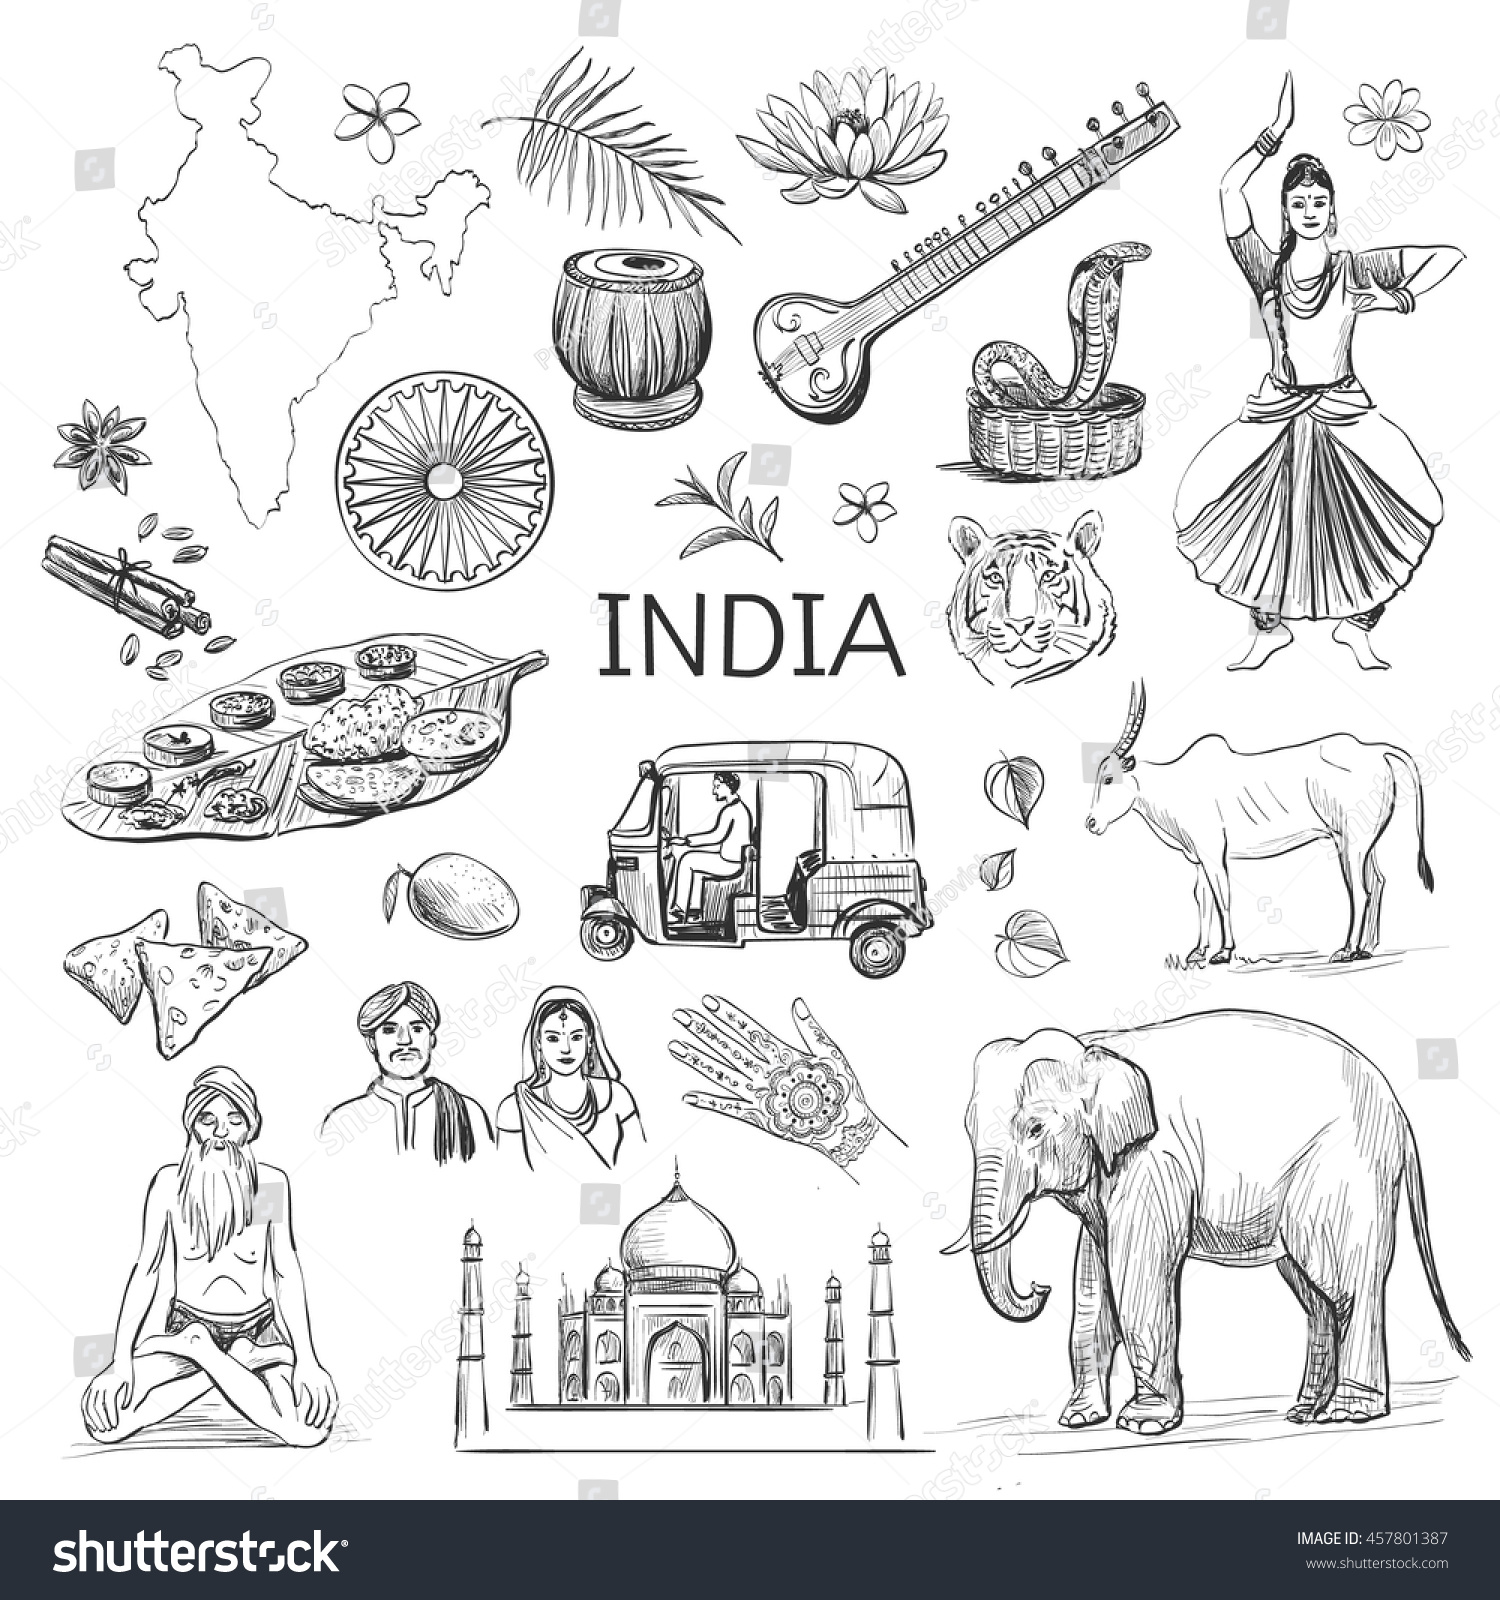 Isolated sketches on the theme of india n white background